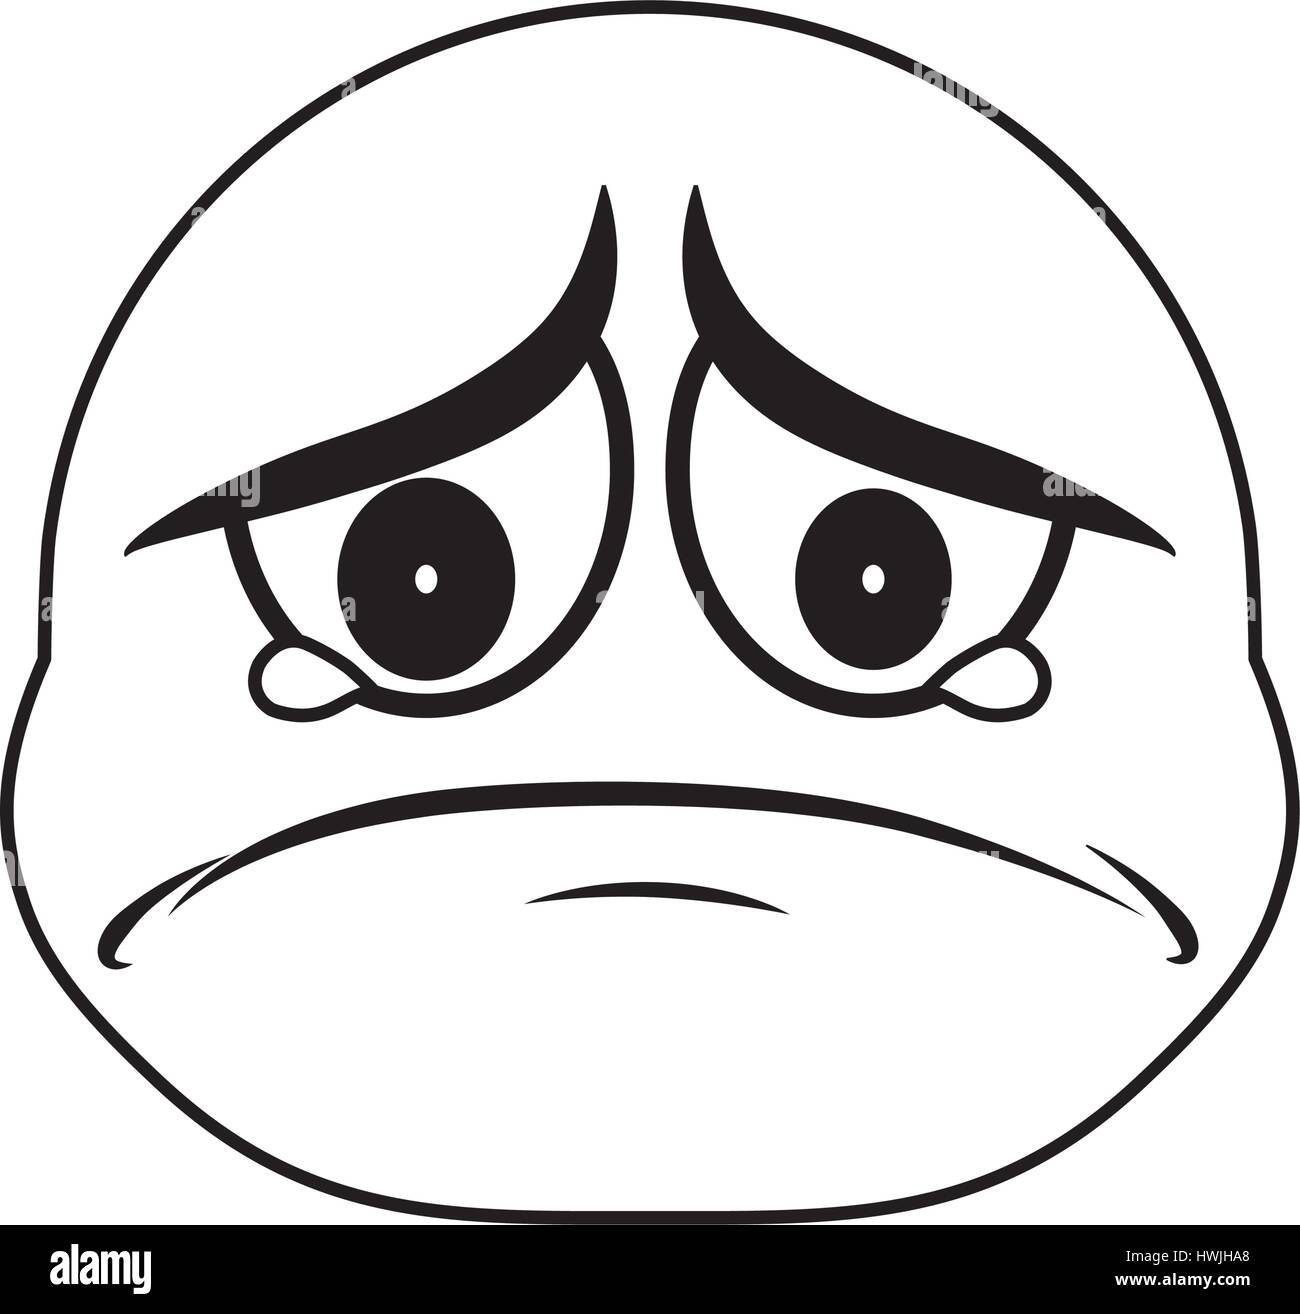 Sad Cartoon Face High Resolution Stock Photography And Images Alamy